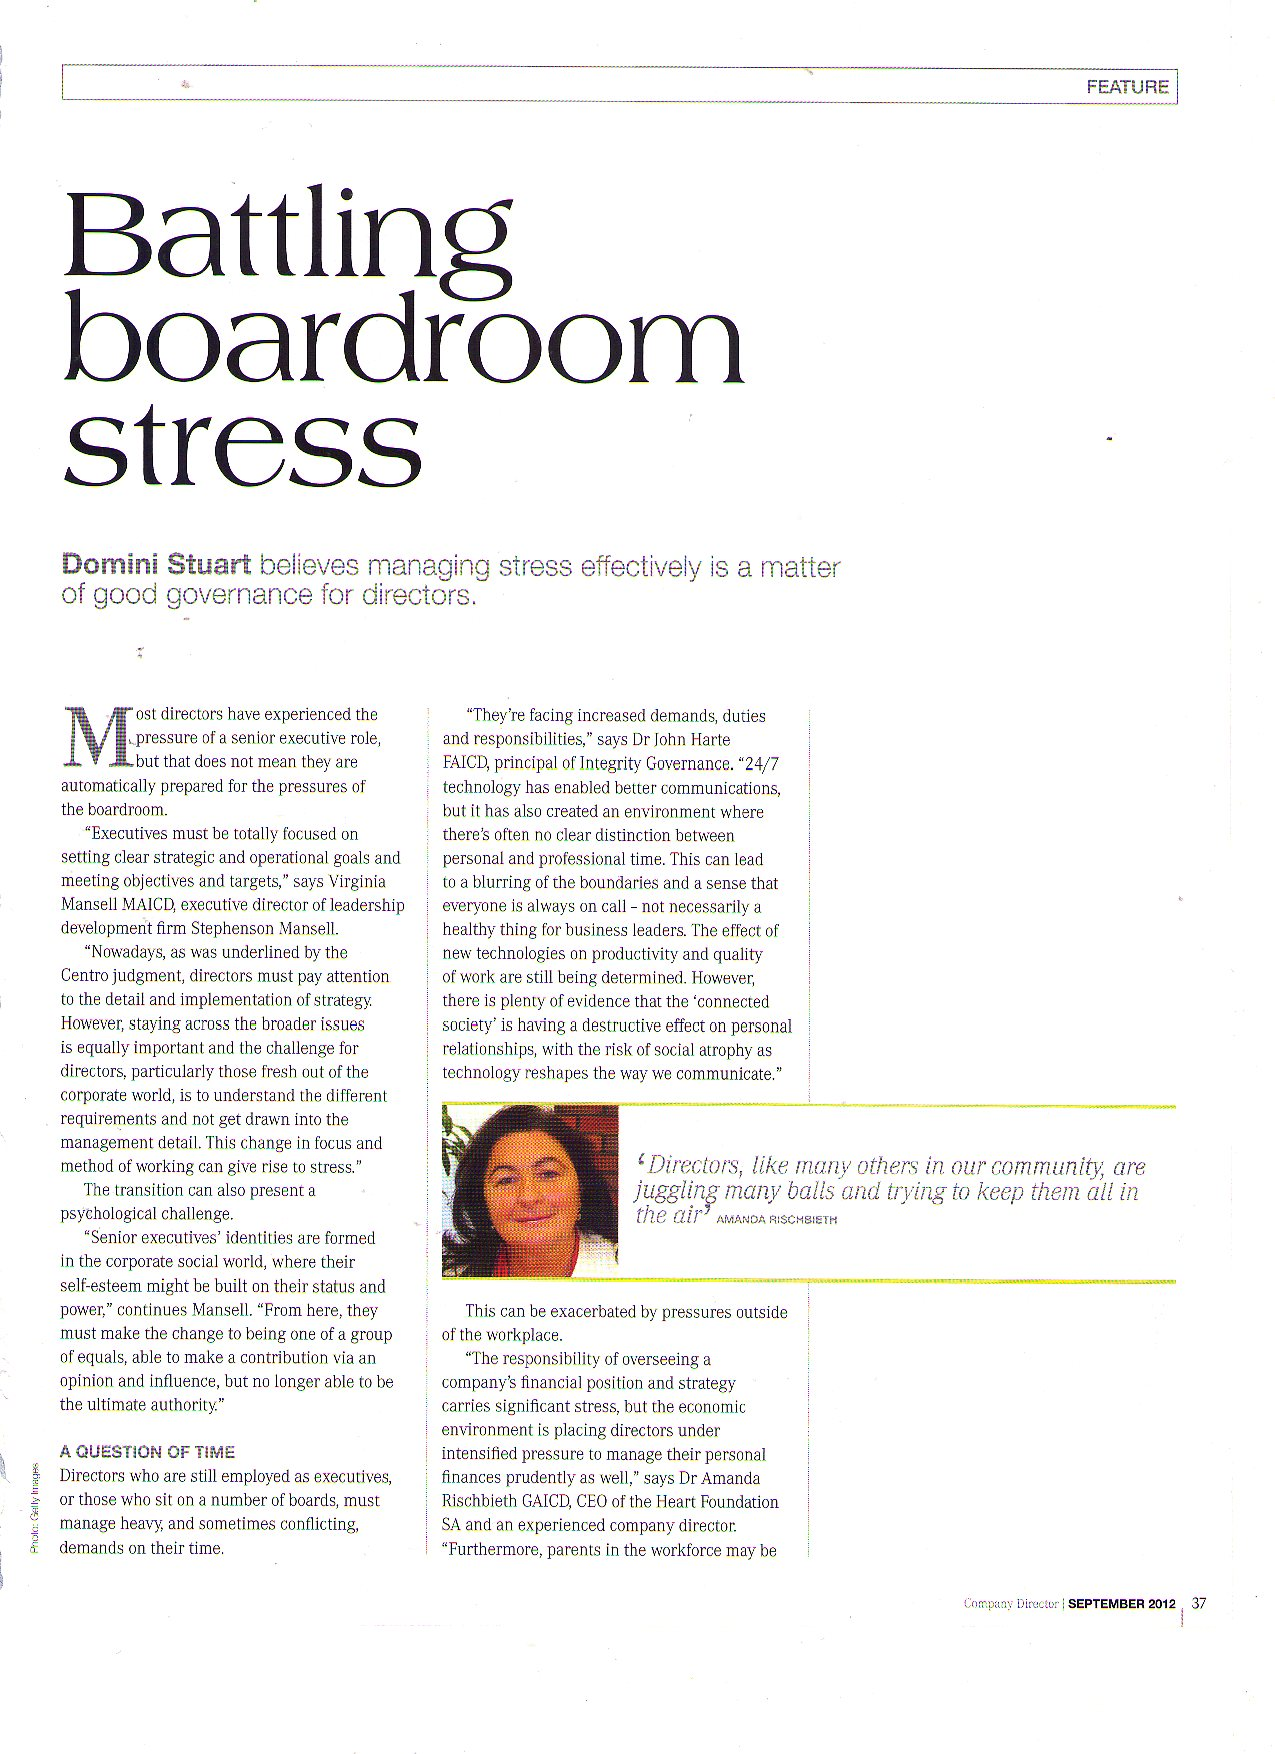 Battling Boardroom Stress